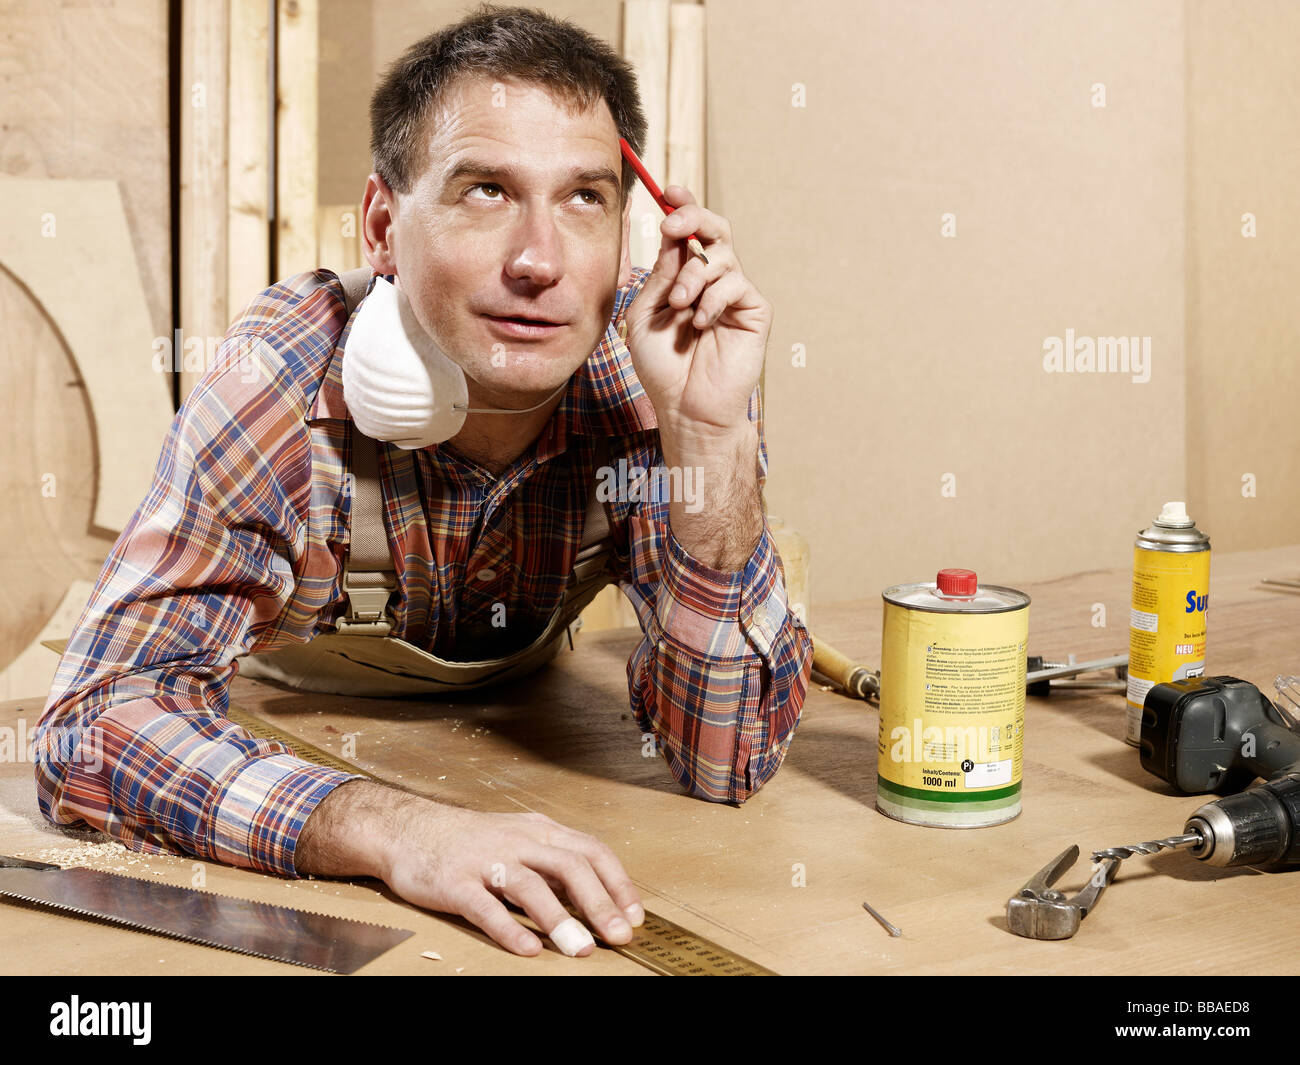 A man leaning on a workbench and thinking - Stock Image